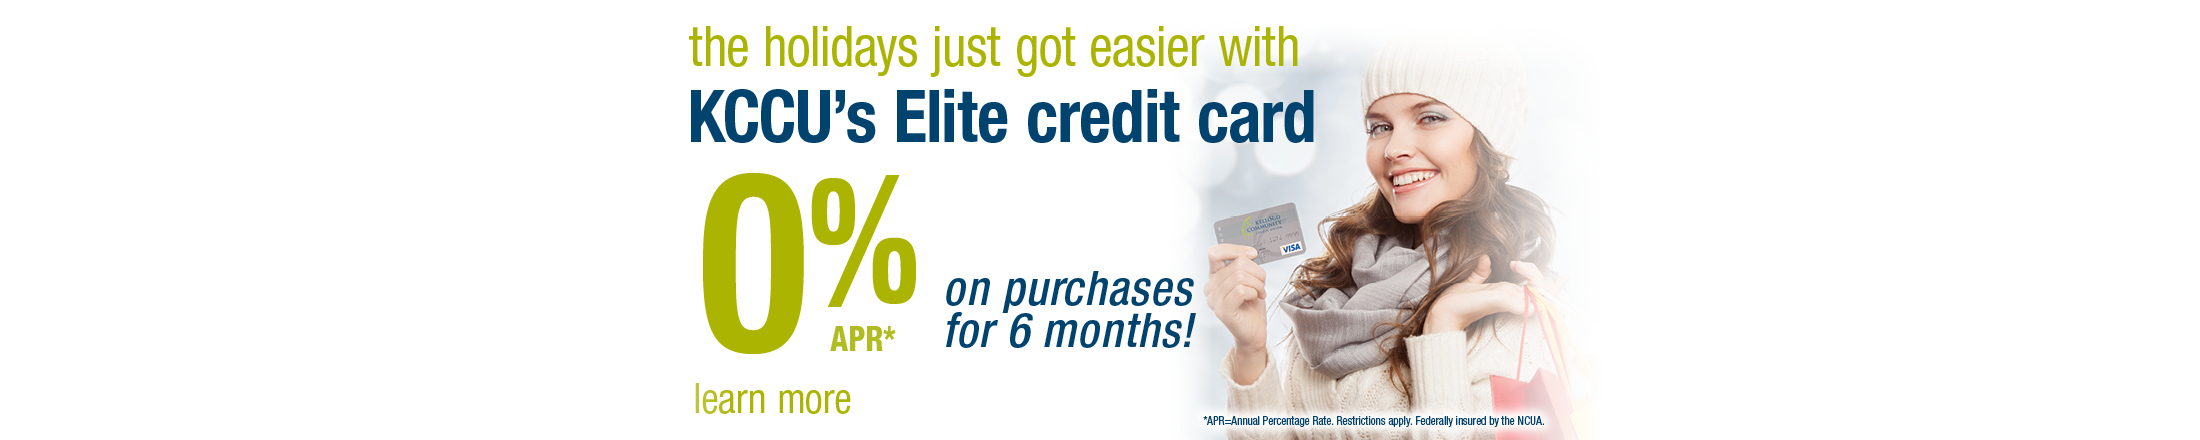 KCCU Elite Card Promotion